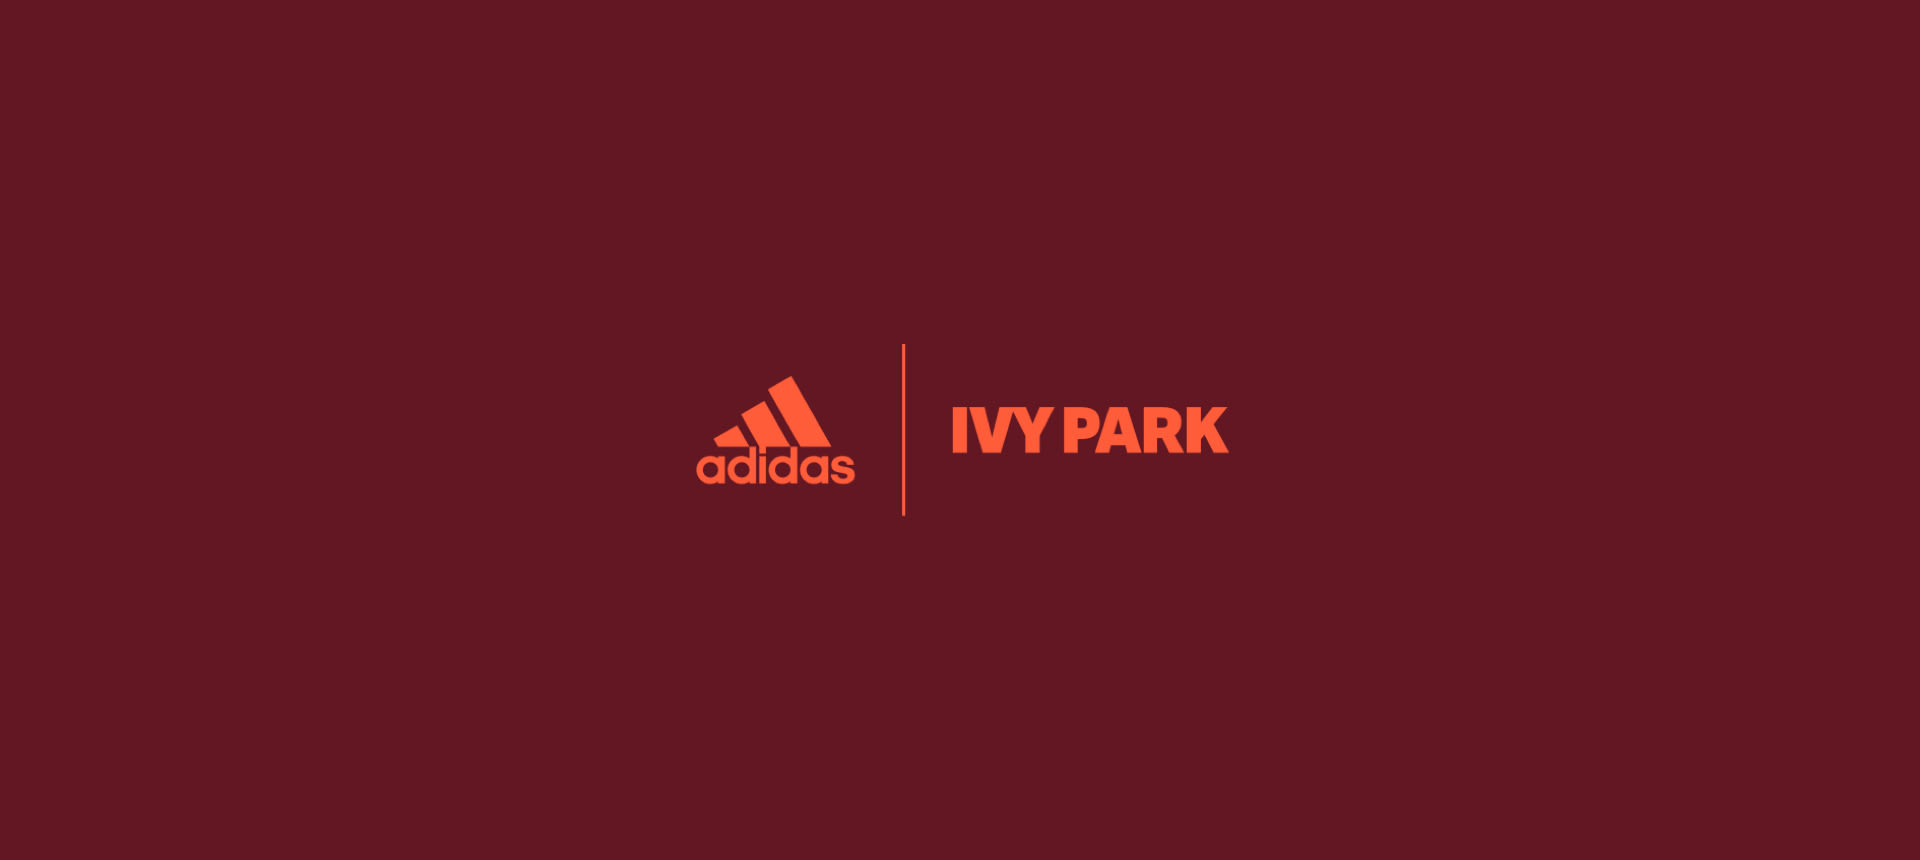 adidas IVY PARK Ultraboost Shoes